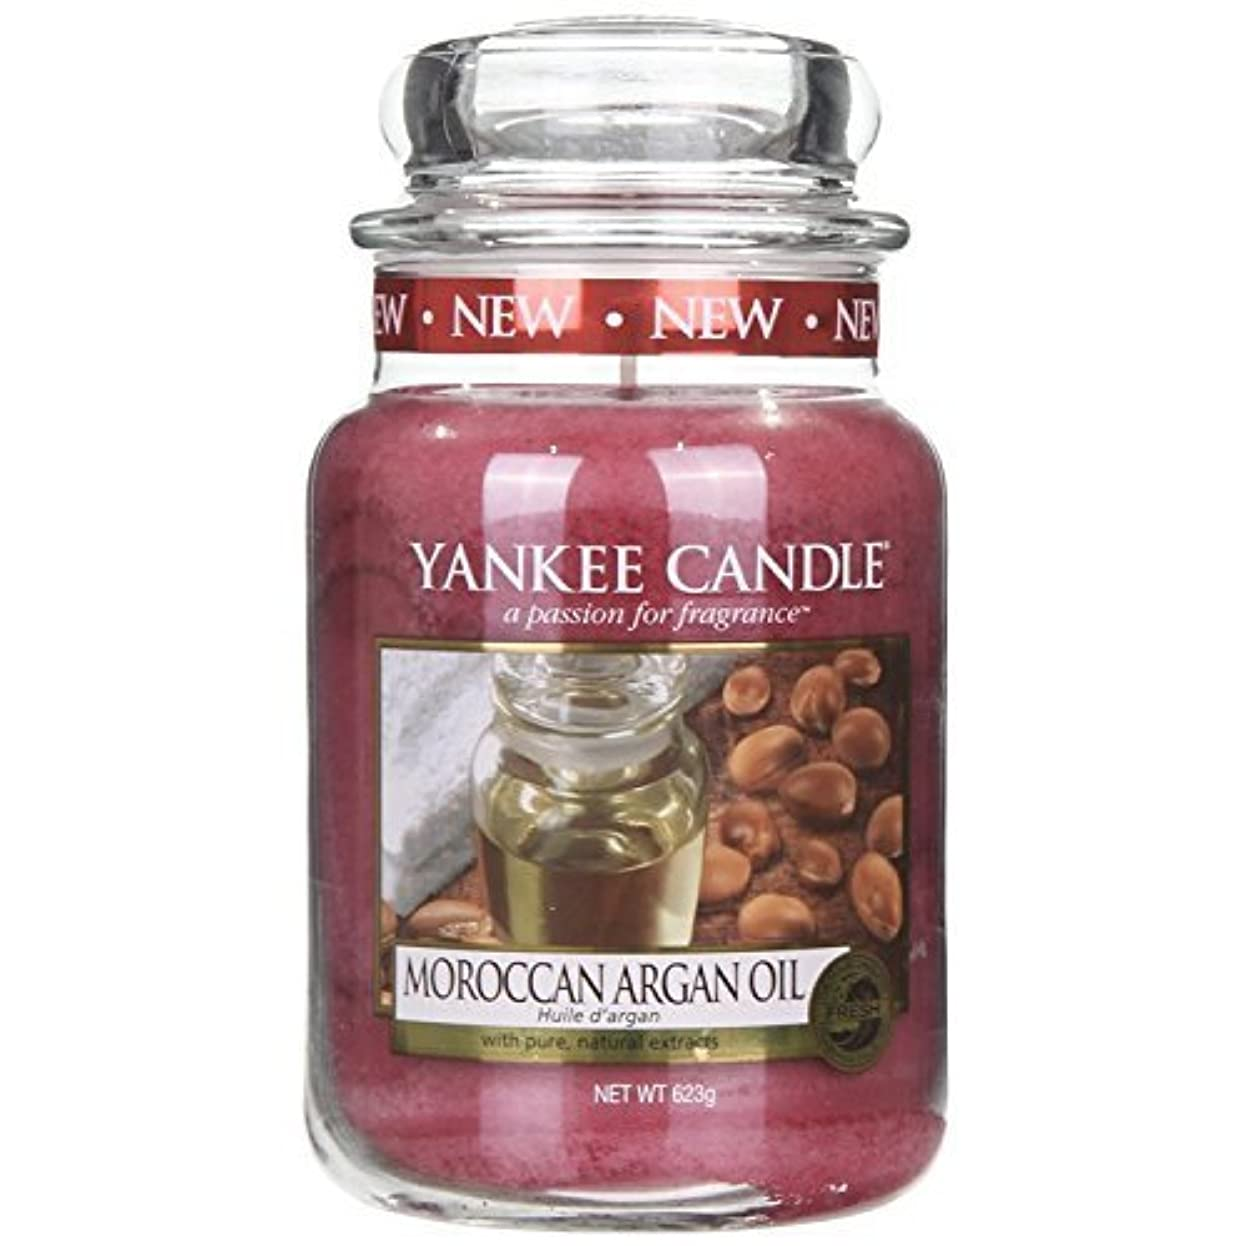 中毒マージマラドロイトYankee Candle MOROCCAN ARGAN OIL 22oz Large Jar Candle - UK Exclusive by Yankee Candle [並行輸入品]